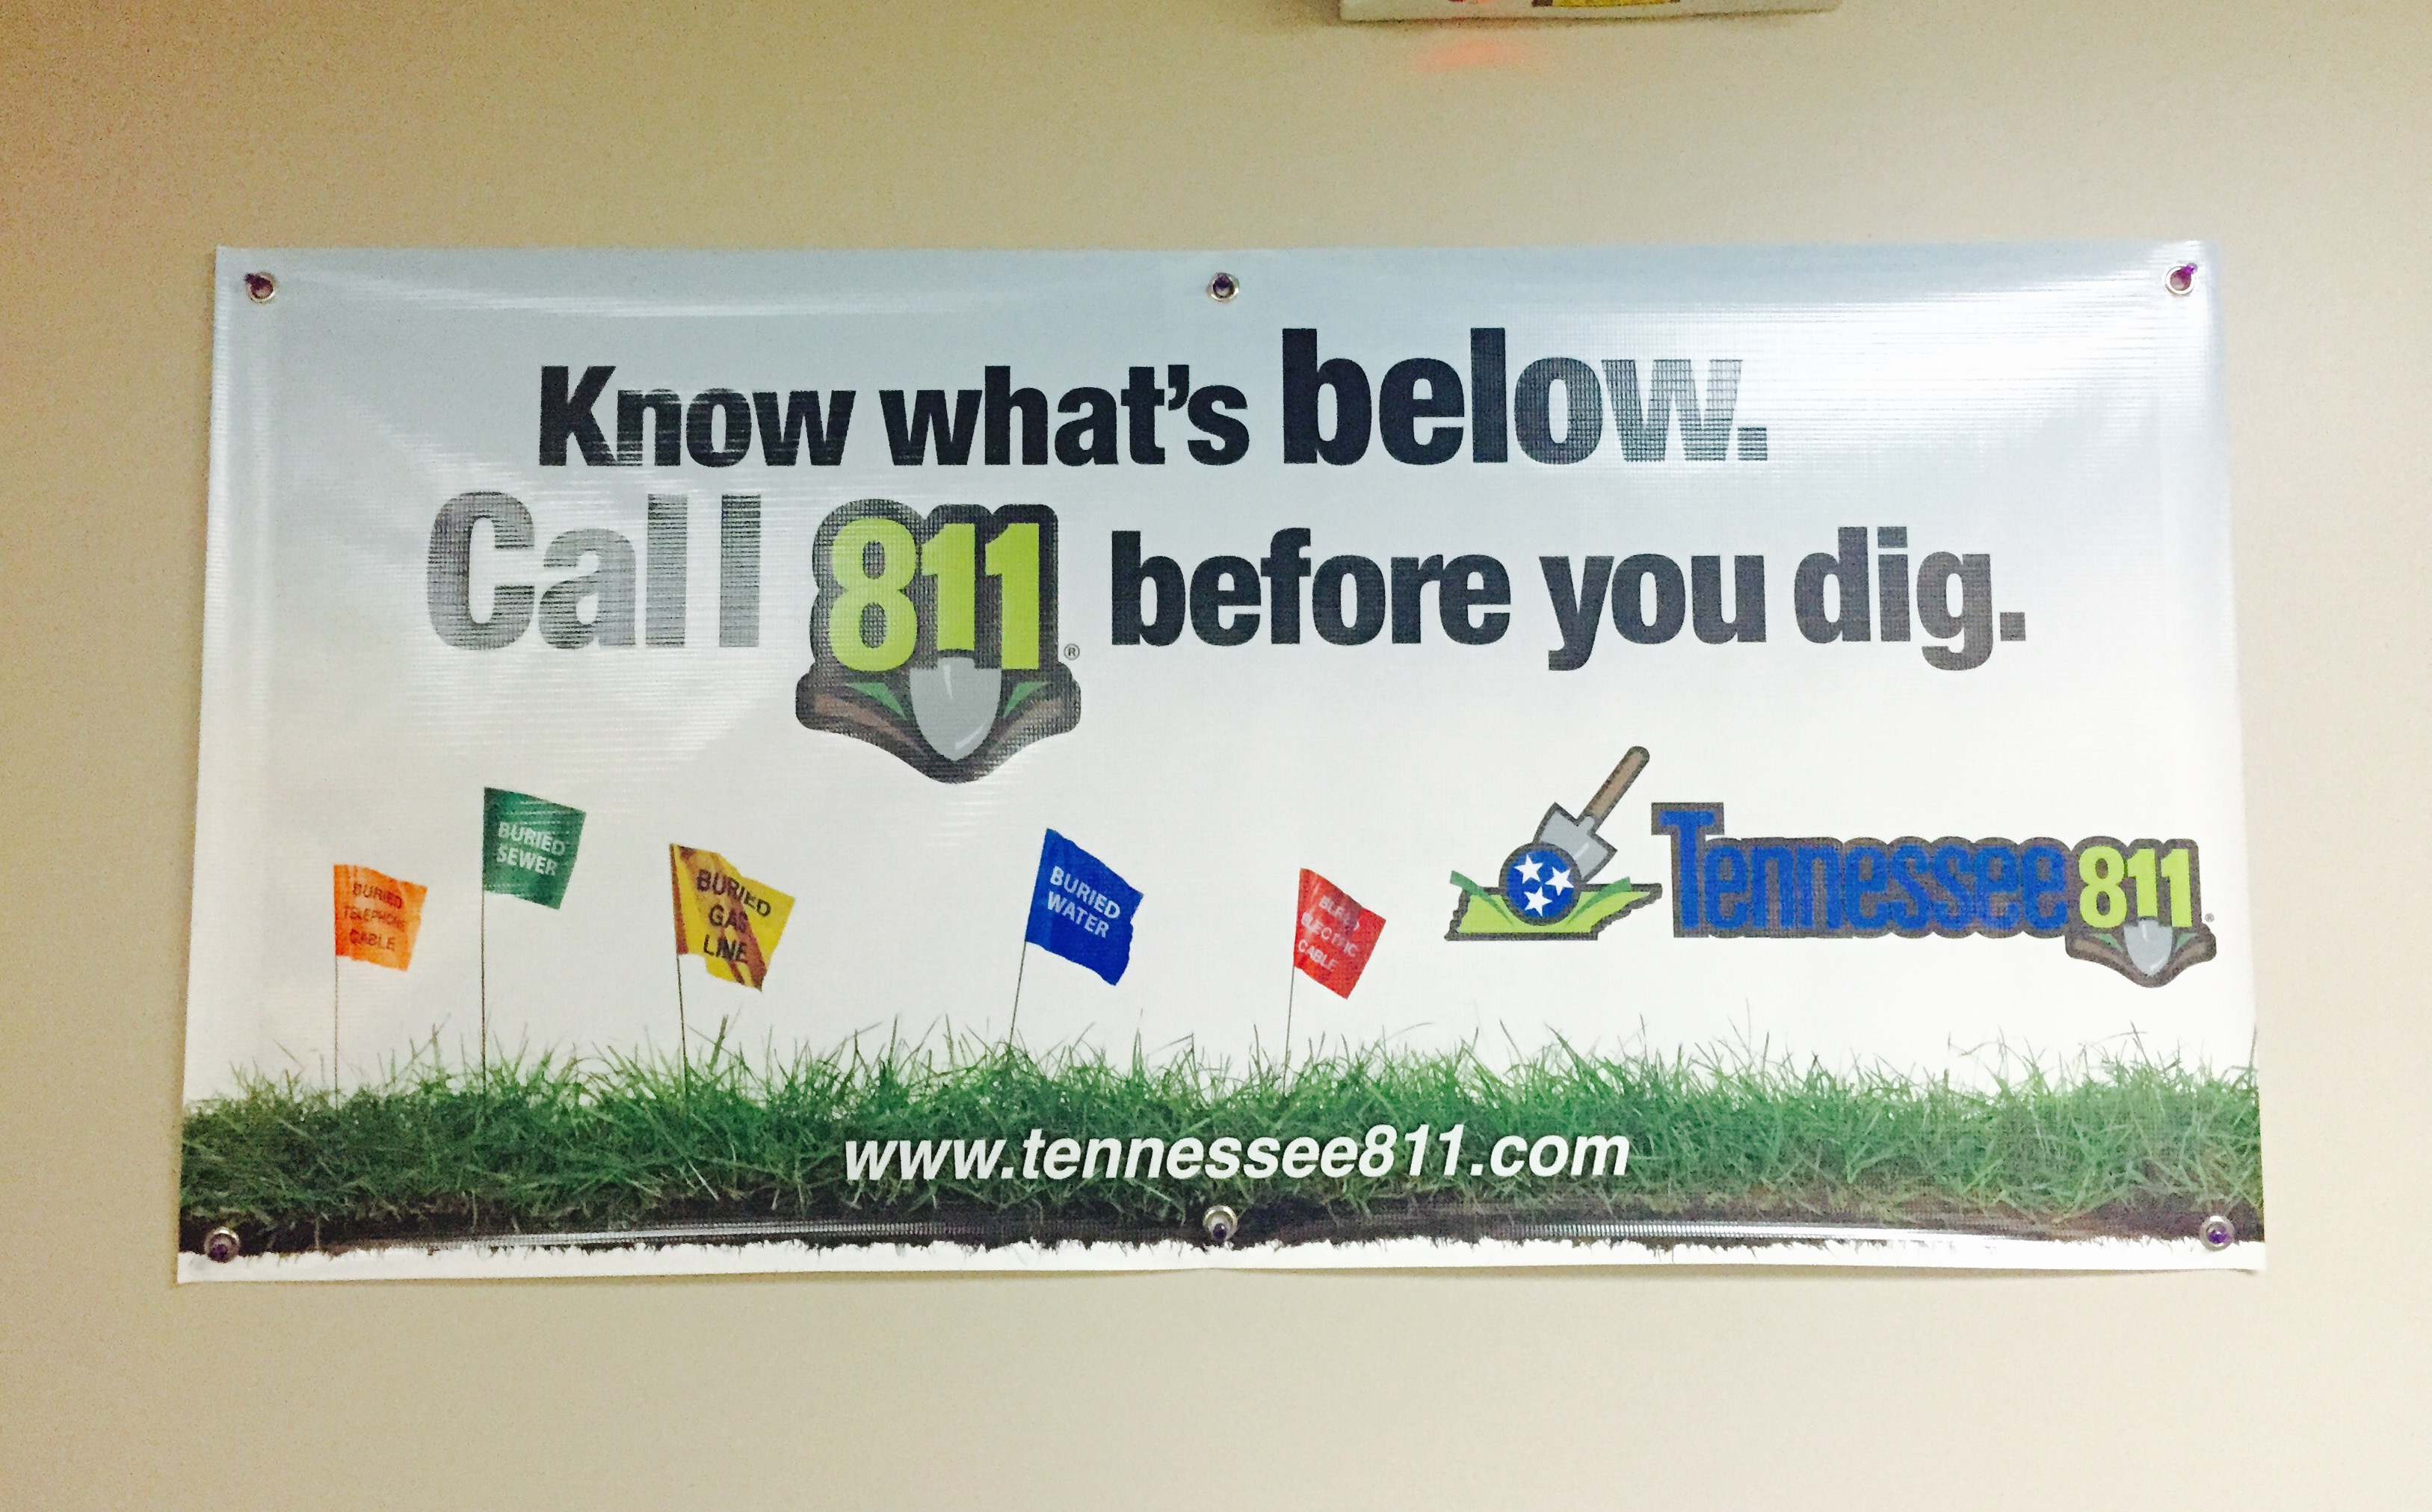 Tennessee 811 Gives Residents Instant Answers with Live Chat